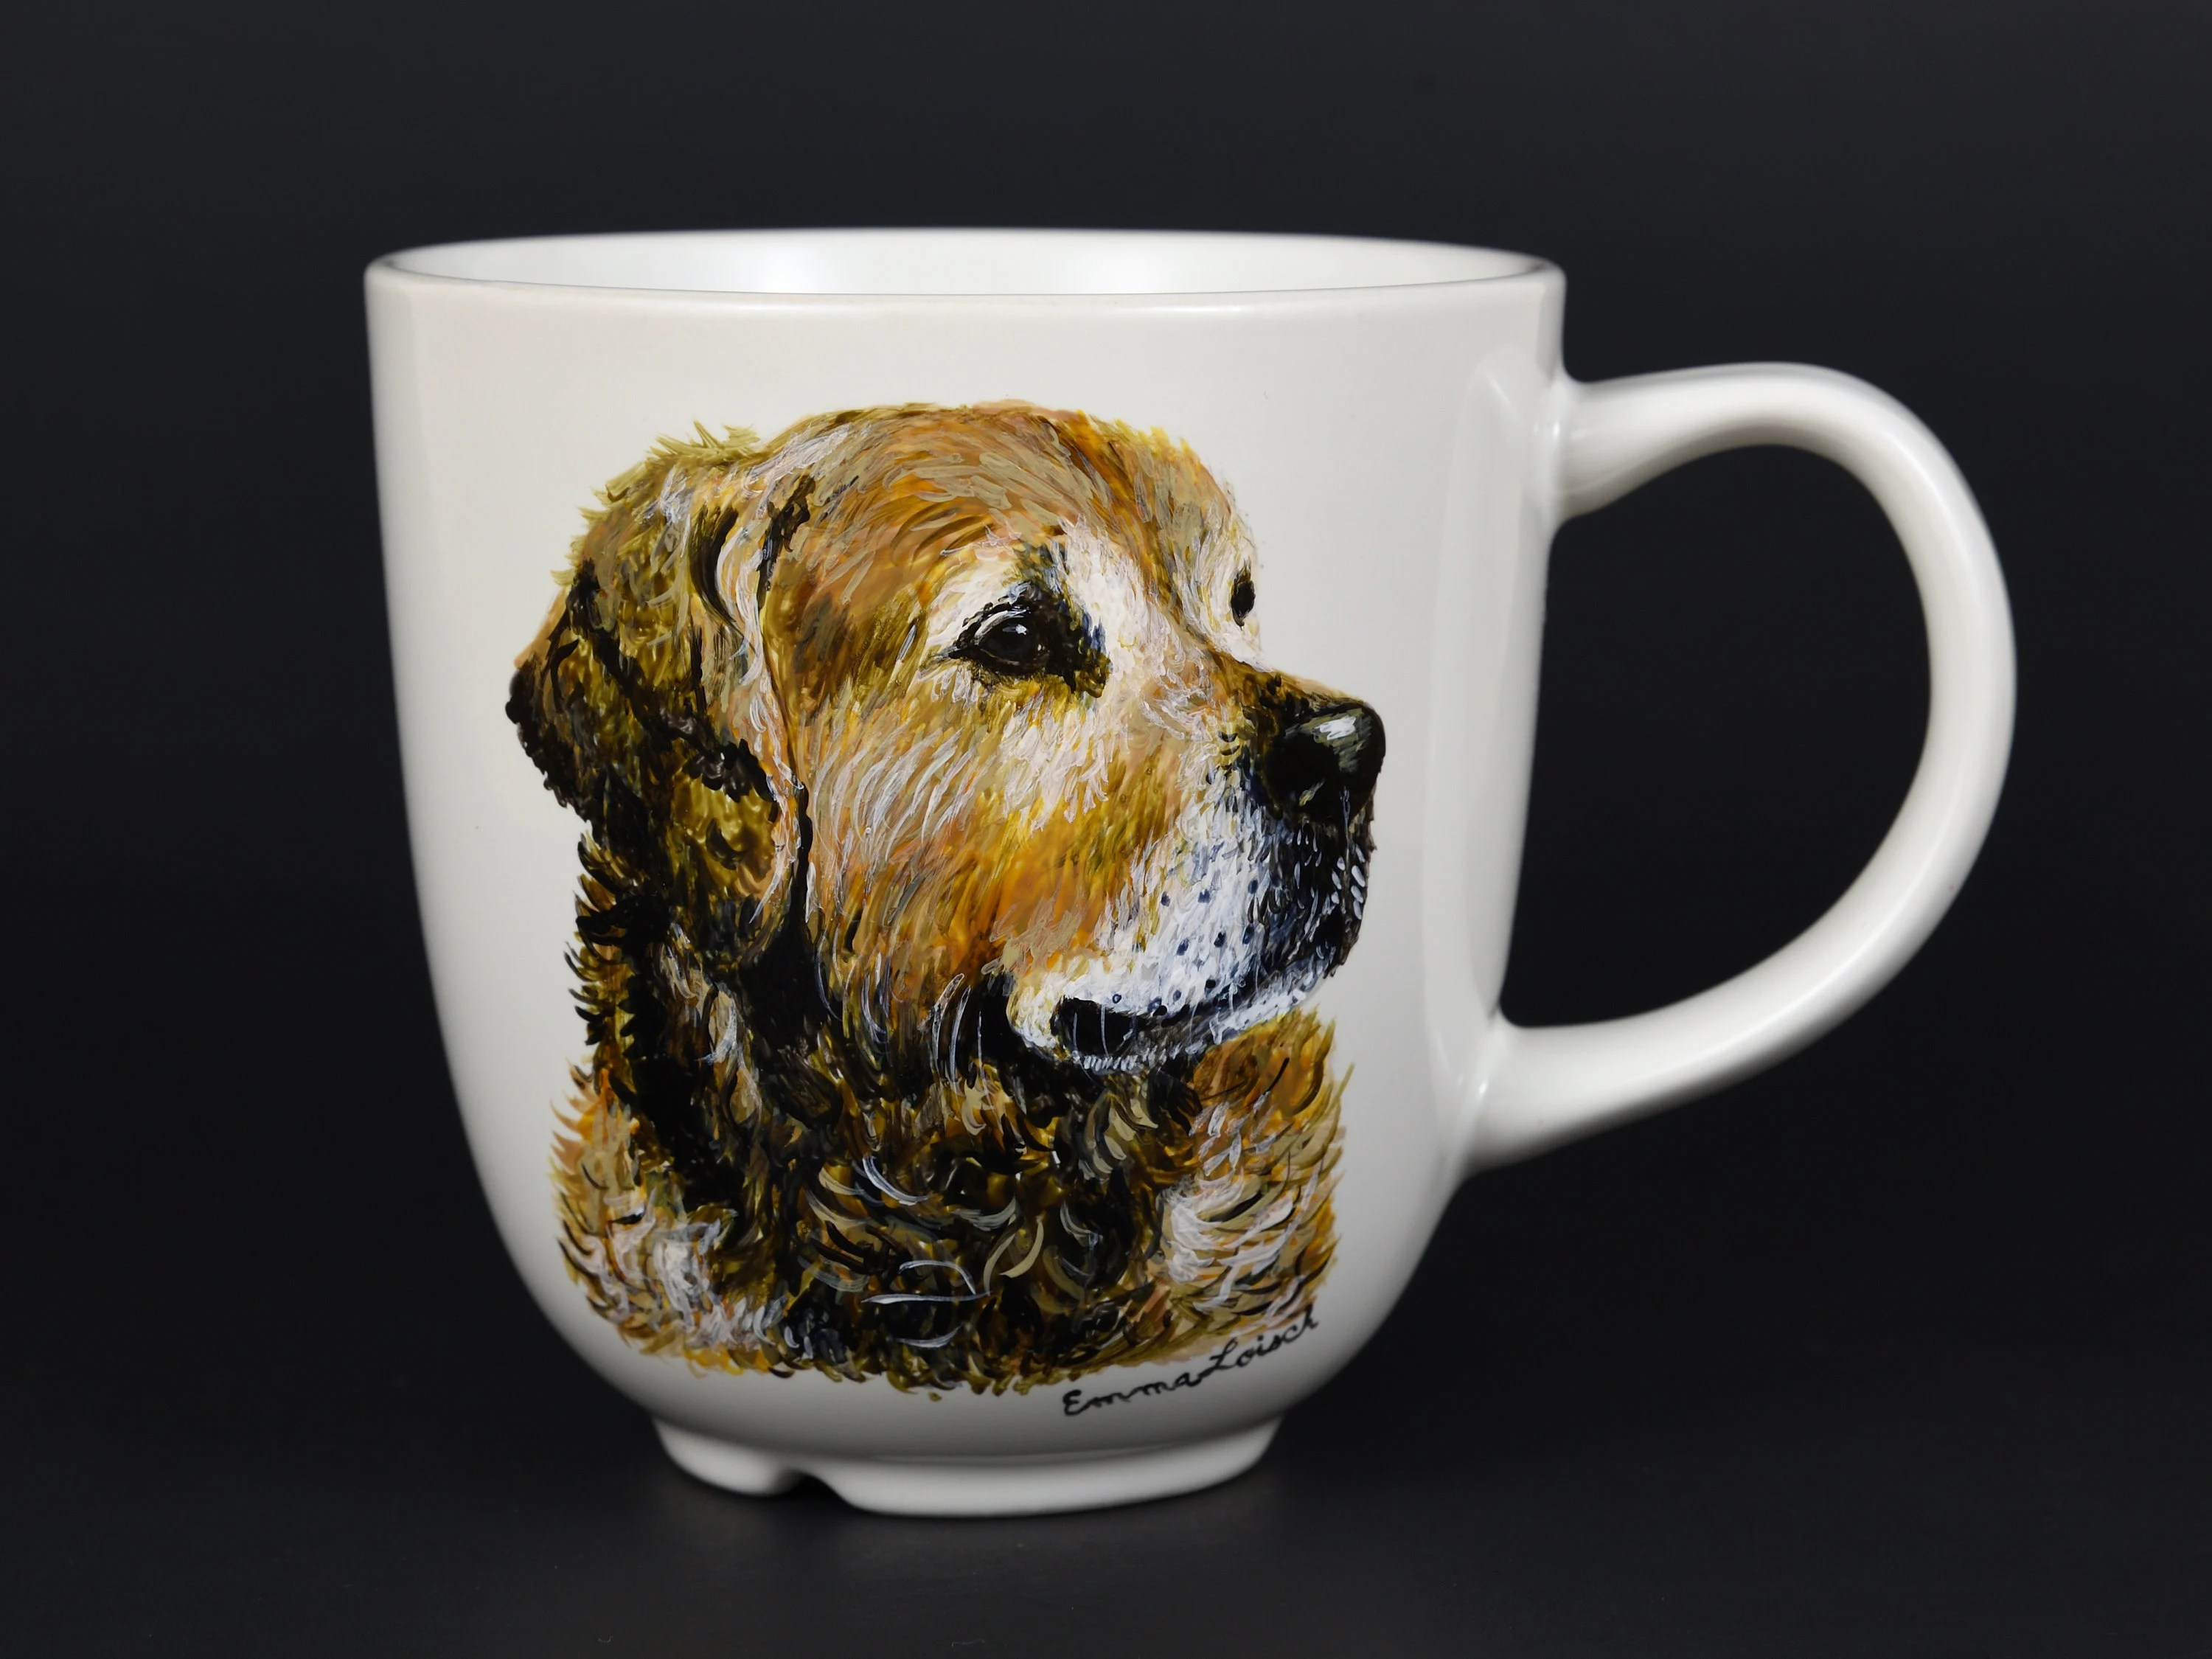 Animal Coffee Cups Customized Mug Hand Painted From Your Photo Ceramic Coffee Cup Animal Coffee Cup Personalized Coffee Cups Tiger Cup Amur Tiger Cat